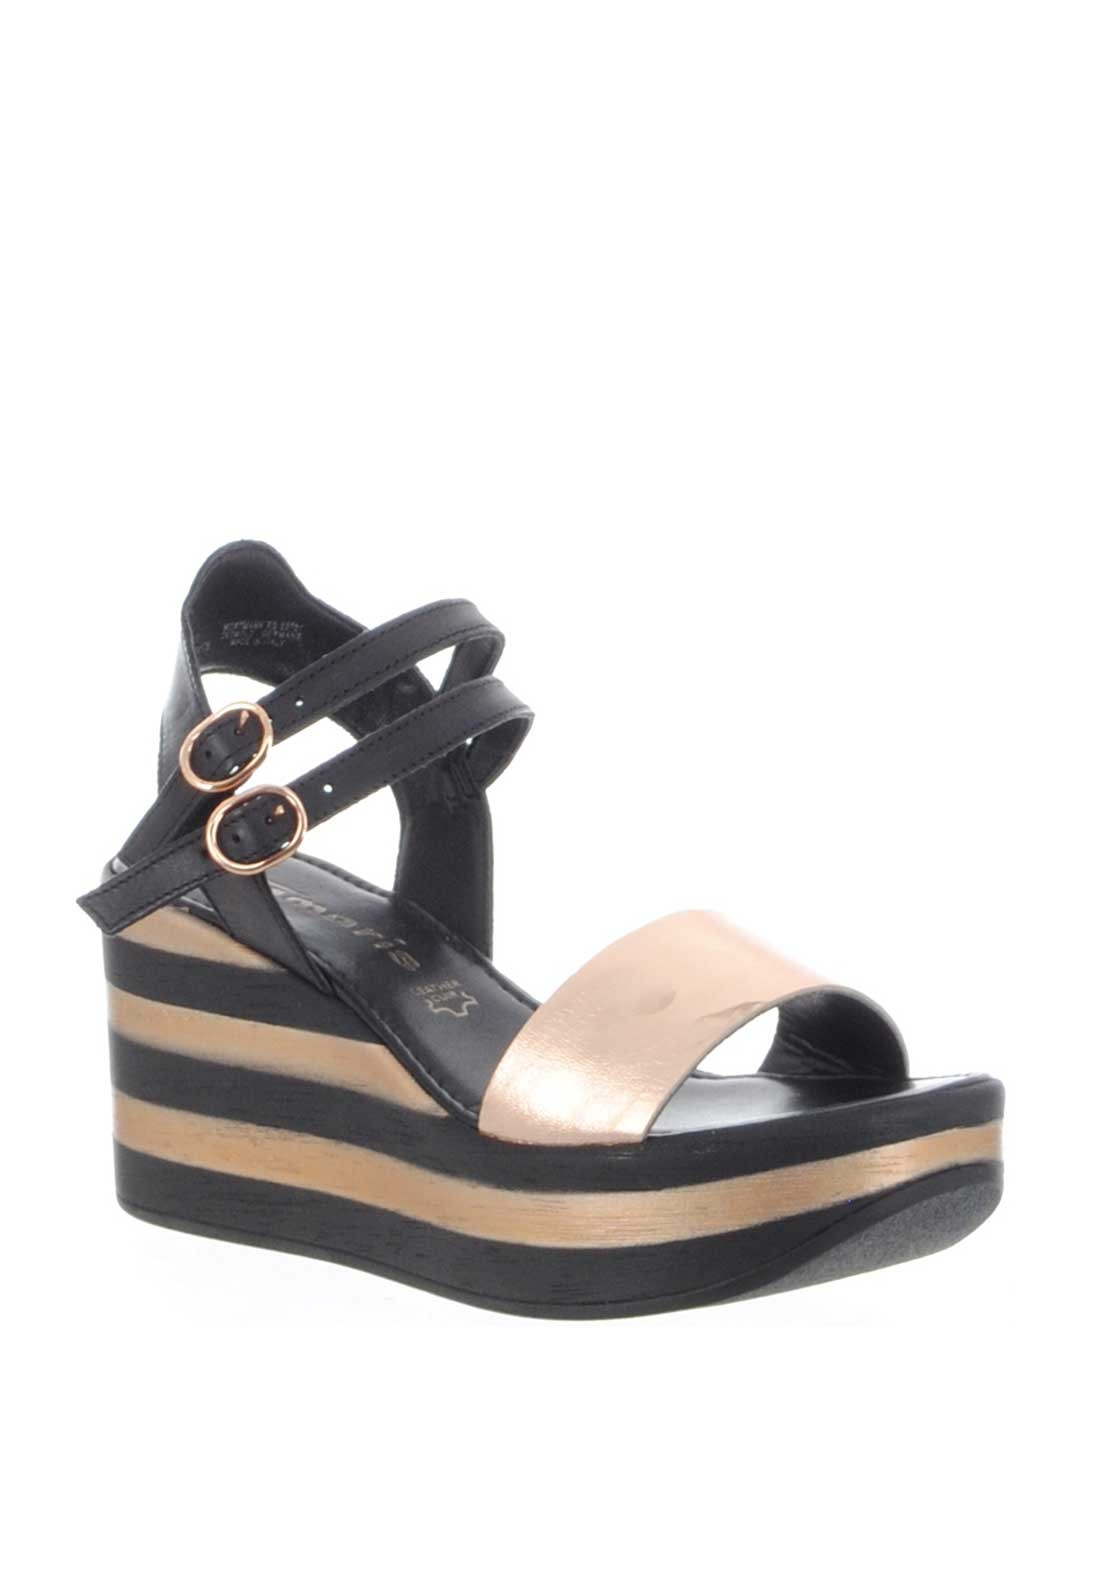 718440ca0 Tamaris Leather Striped Wedged Sandals